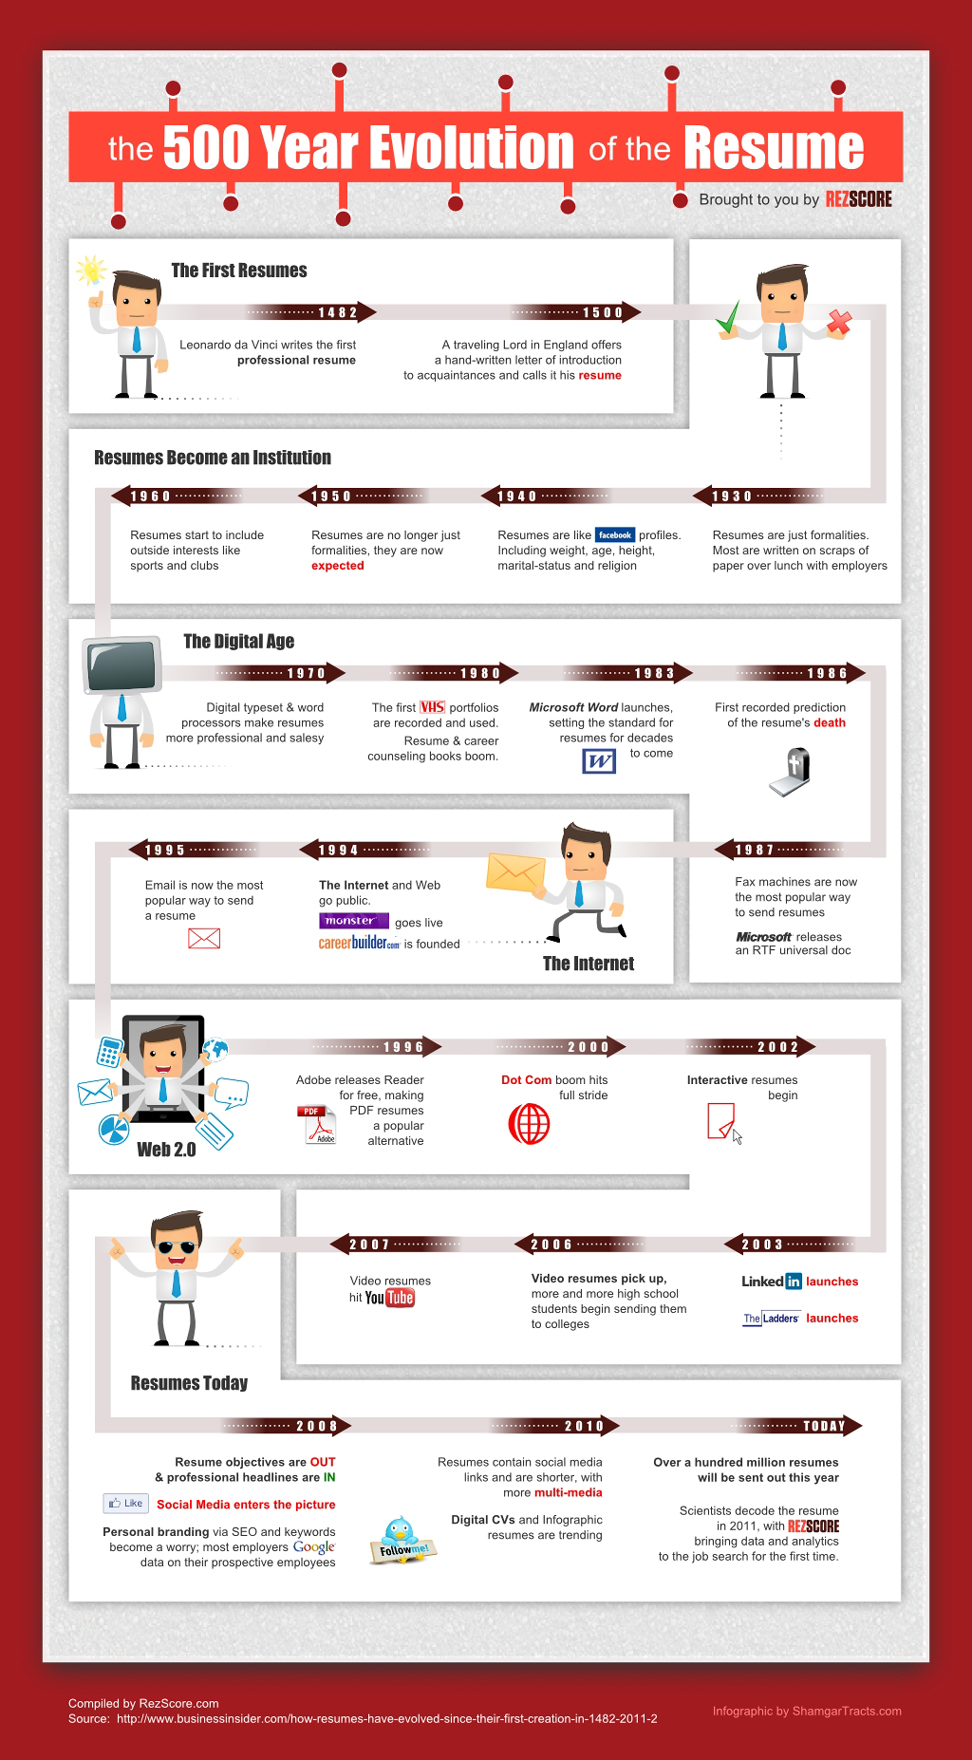 Resumes Over Time-Infographic